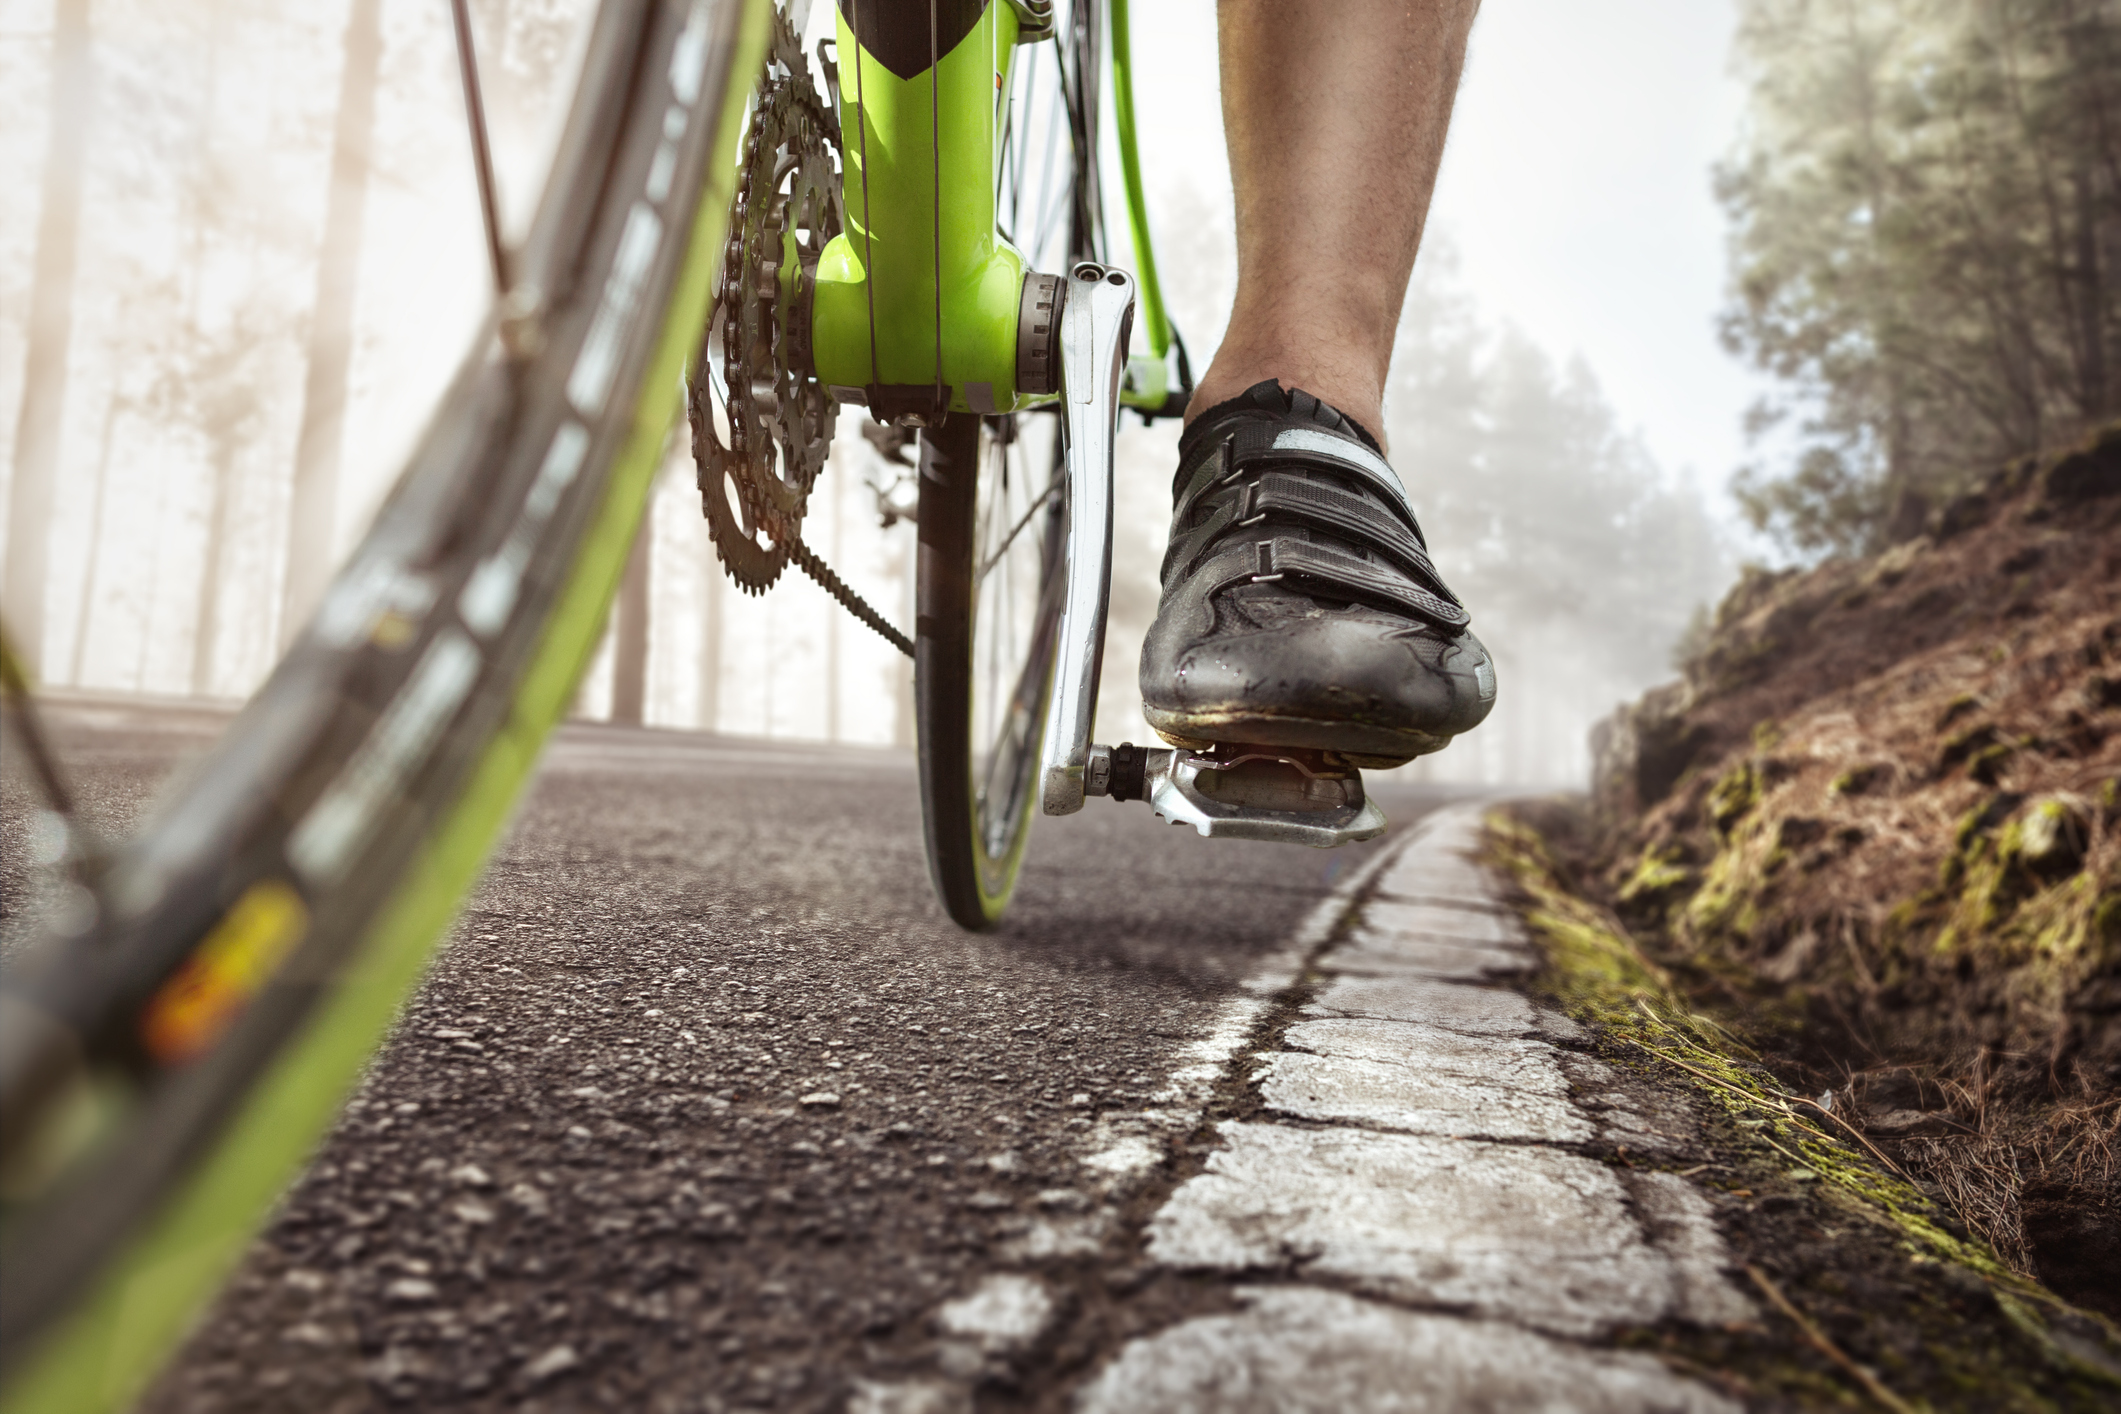 Pedal and shoe of a racing bicycle. Shot from a low angle with cracked road markings in the foreground.